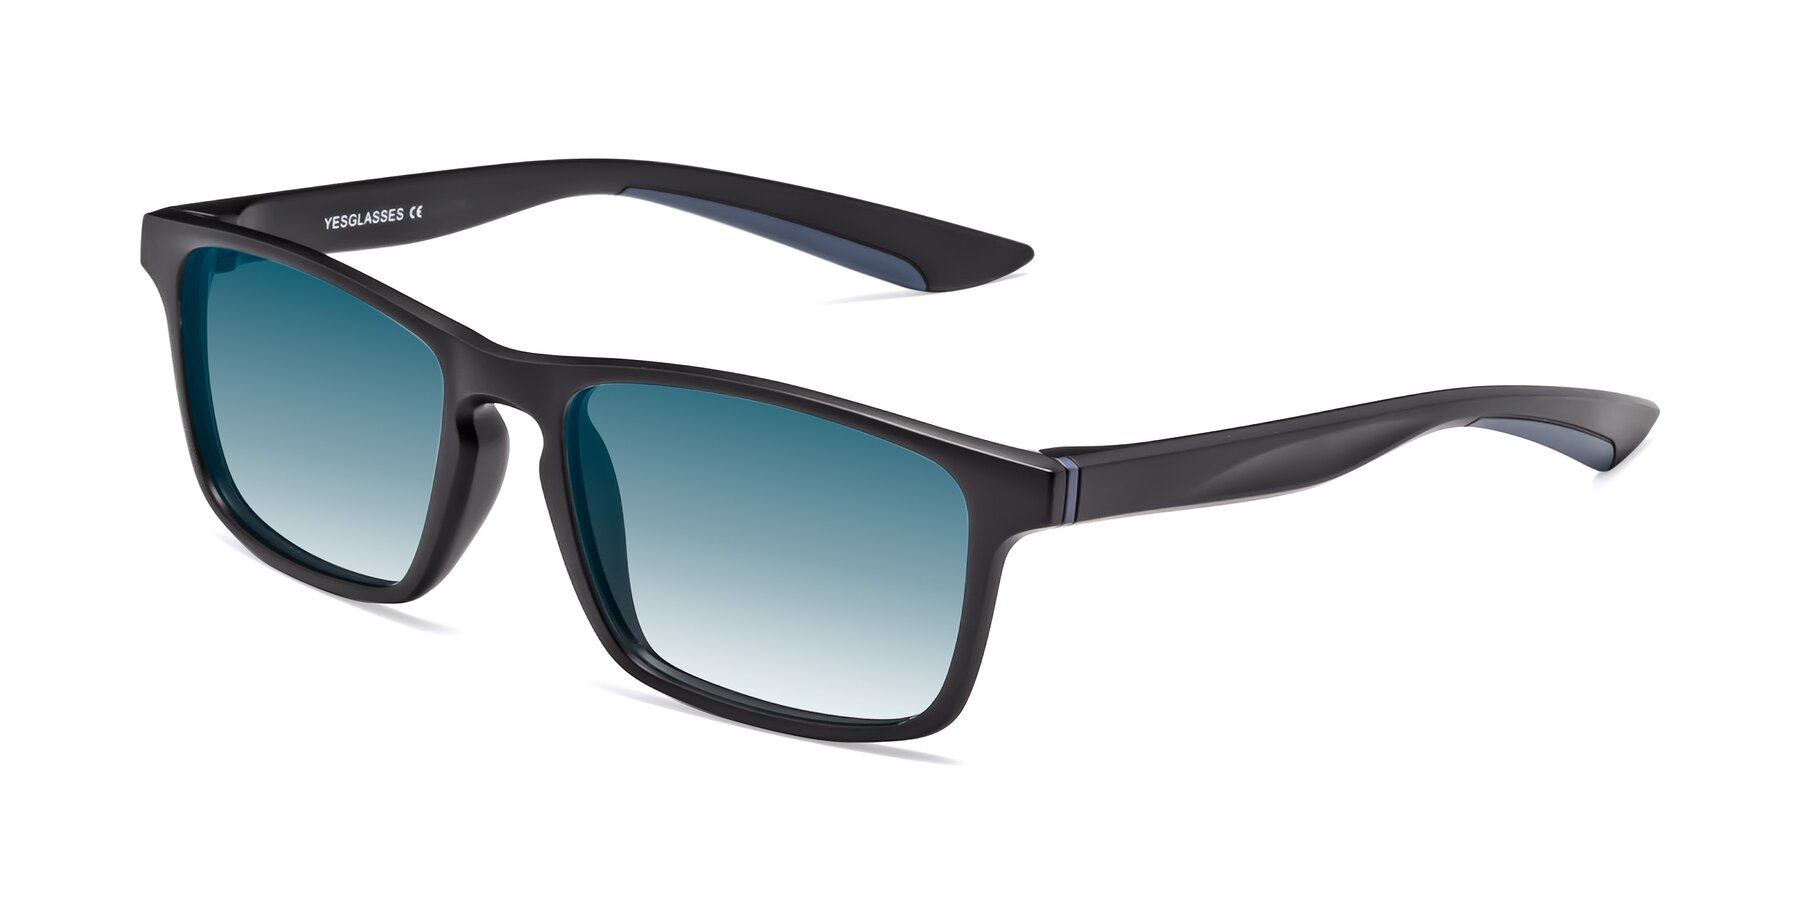 Angle of Passion in Matte Black-Blue with Blue Gradient Lenses